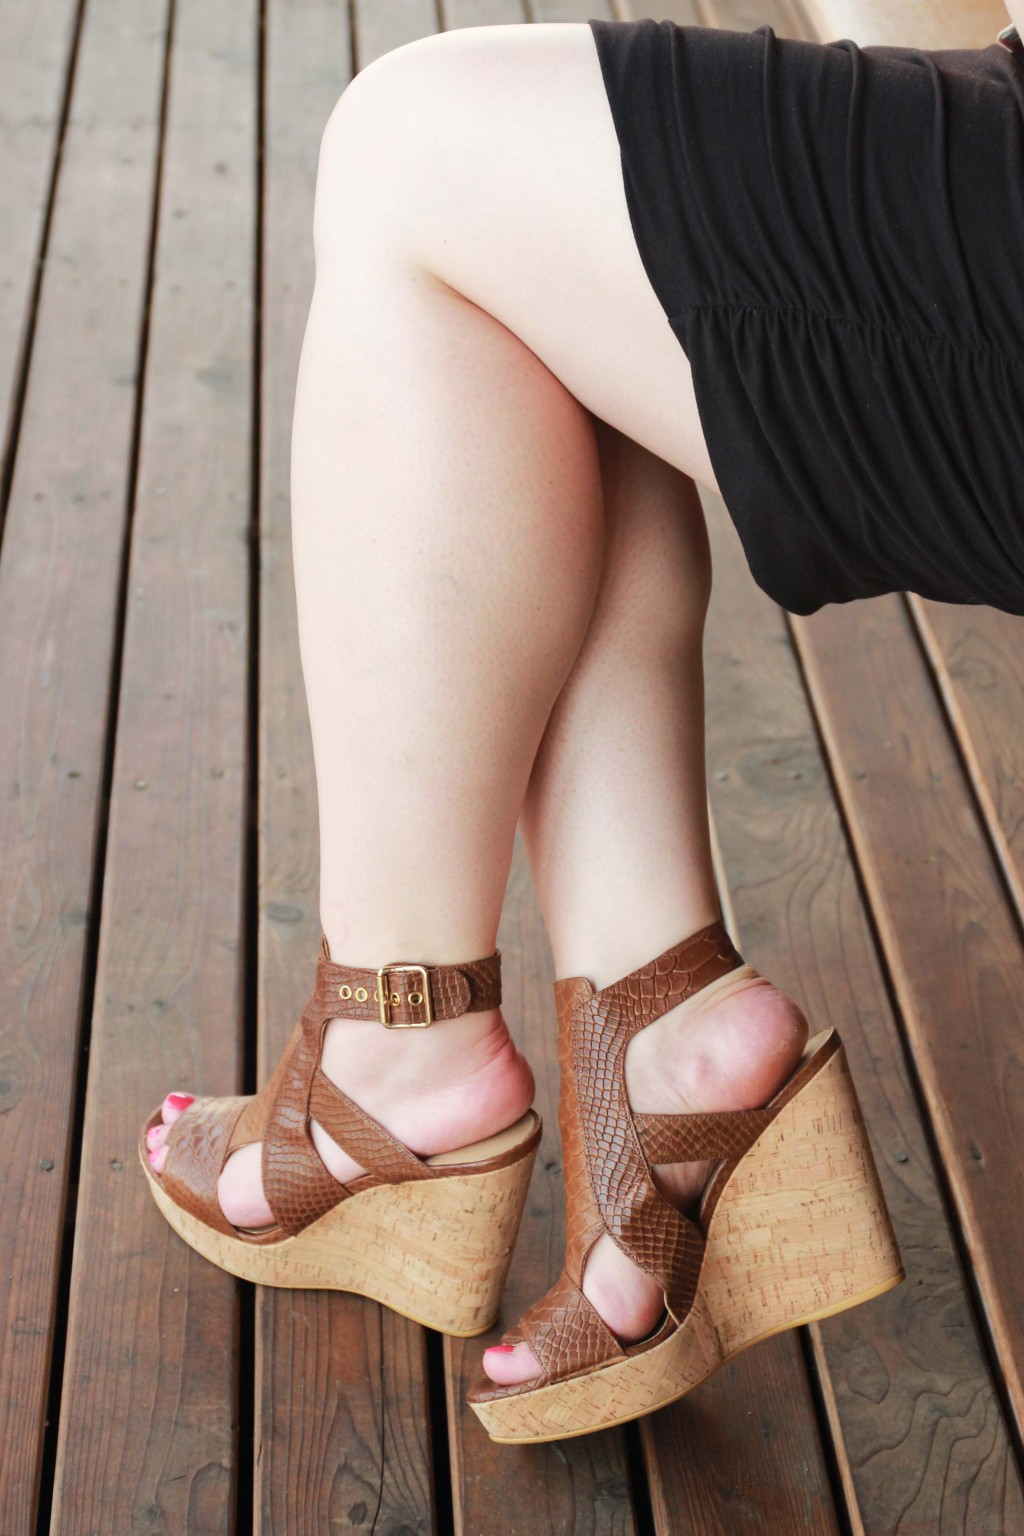 Stuart Weitzman Wedges & Ruched Dress detail